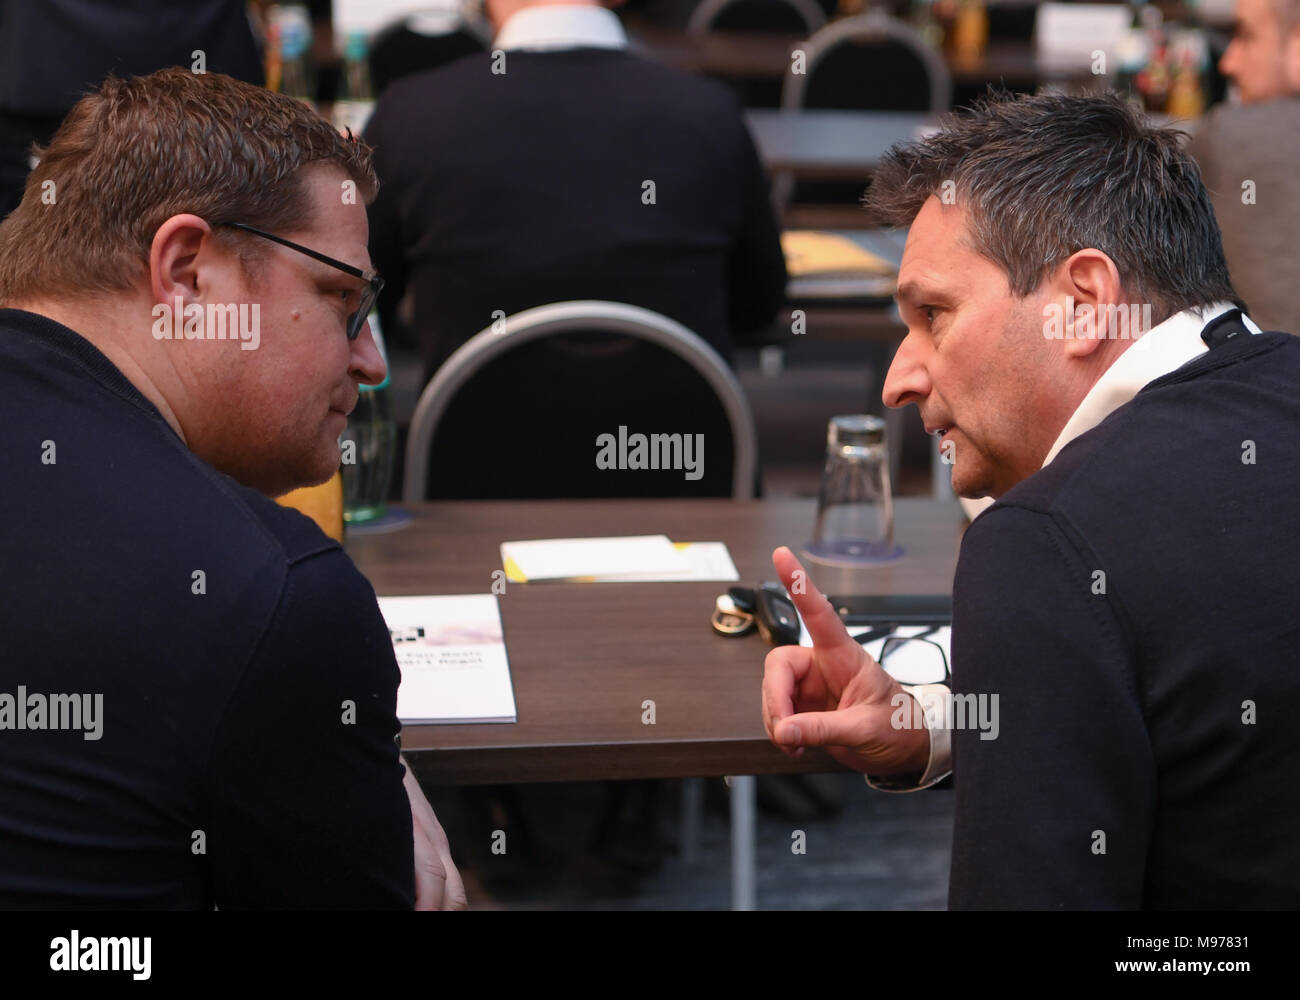 22 March 2018, Germany, Frankfurt/Main: Max Eberl (l), sports director of Borussia Moenchengladbach, and Christian Heidel, sports chairman of FC Schalke 04, speak at a members' assembly of the German Soccer League (DFL). Photo: Arne Dedert/dpa - Stock Image